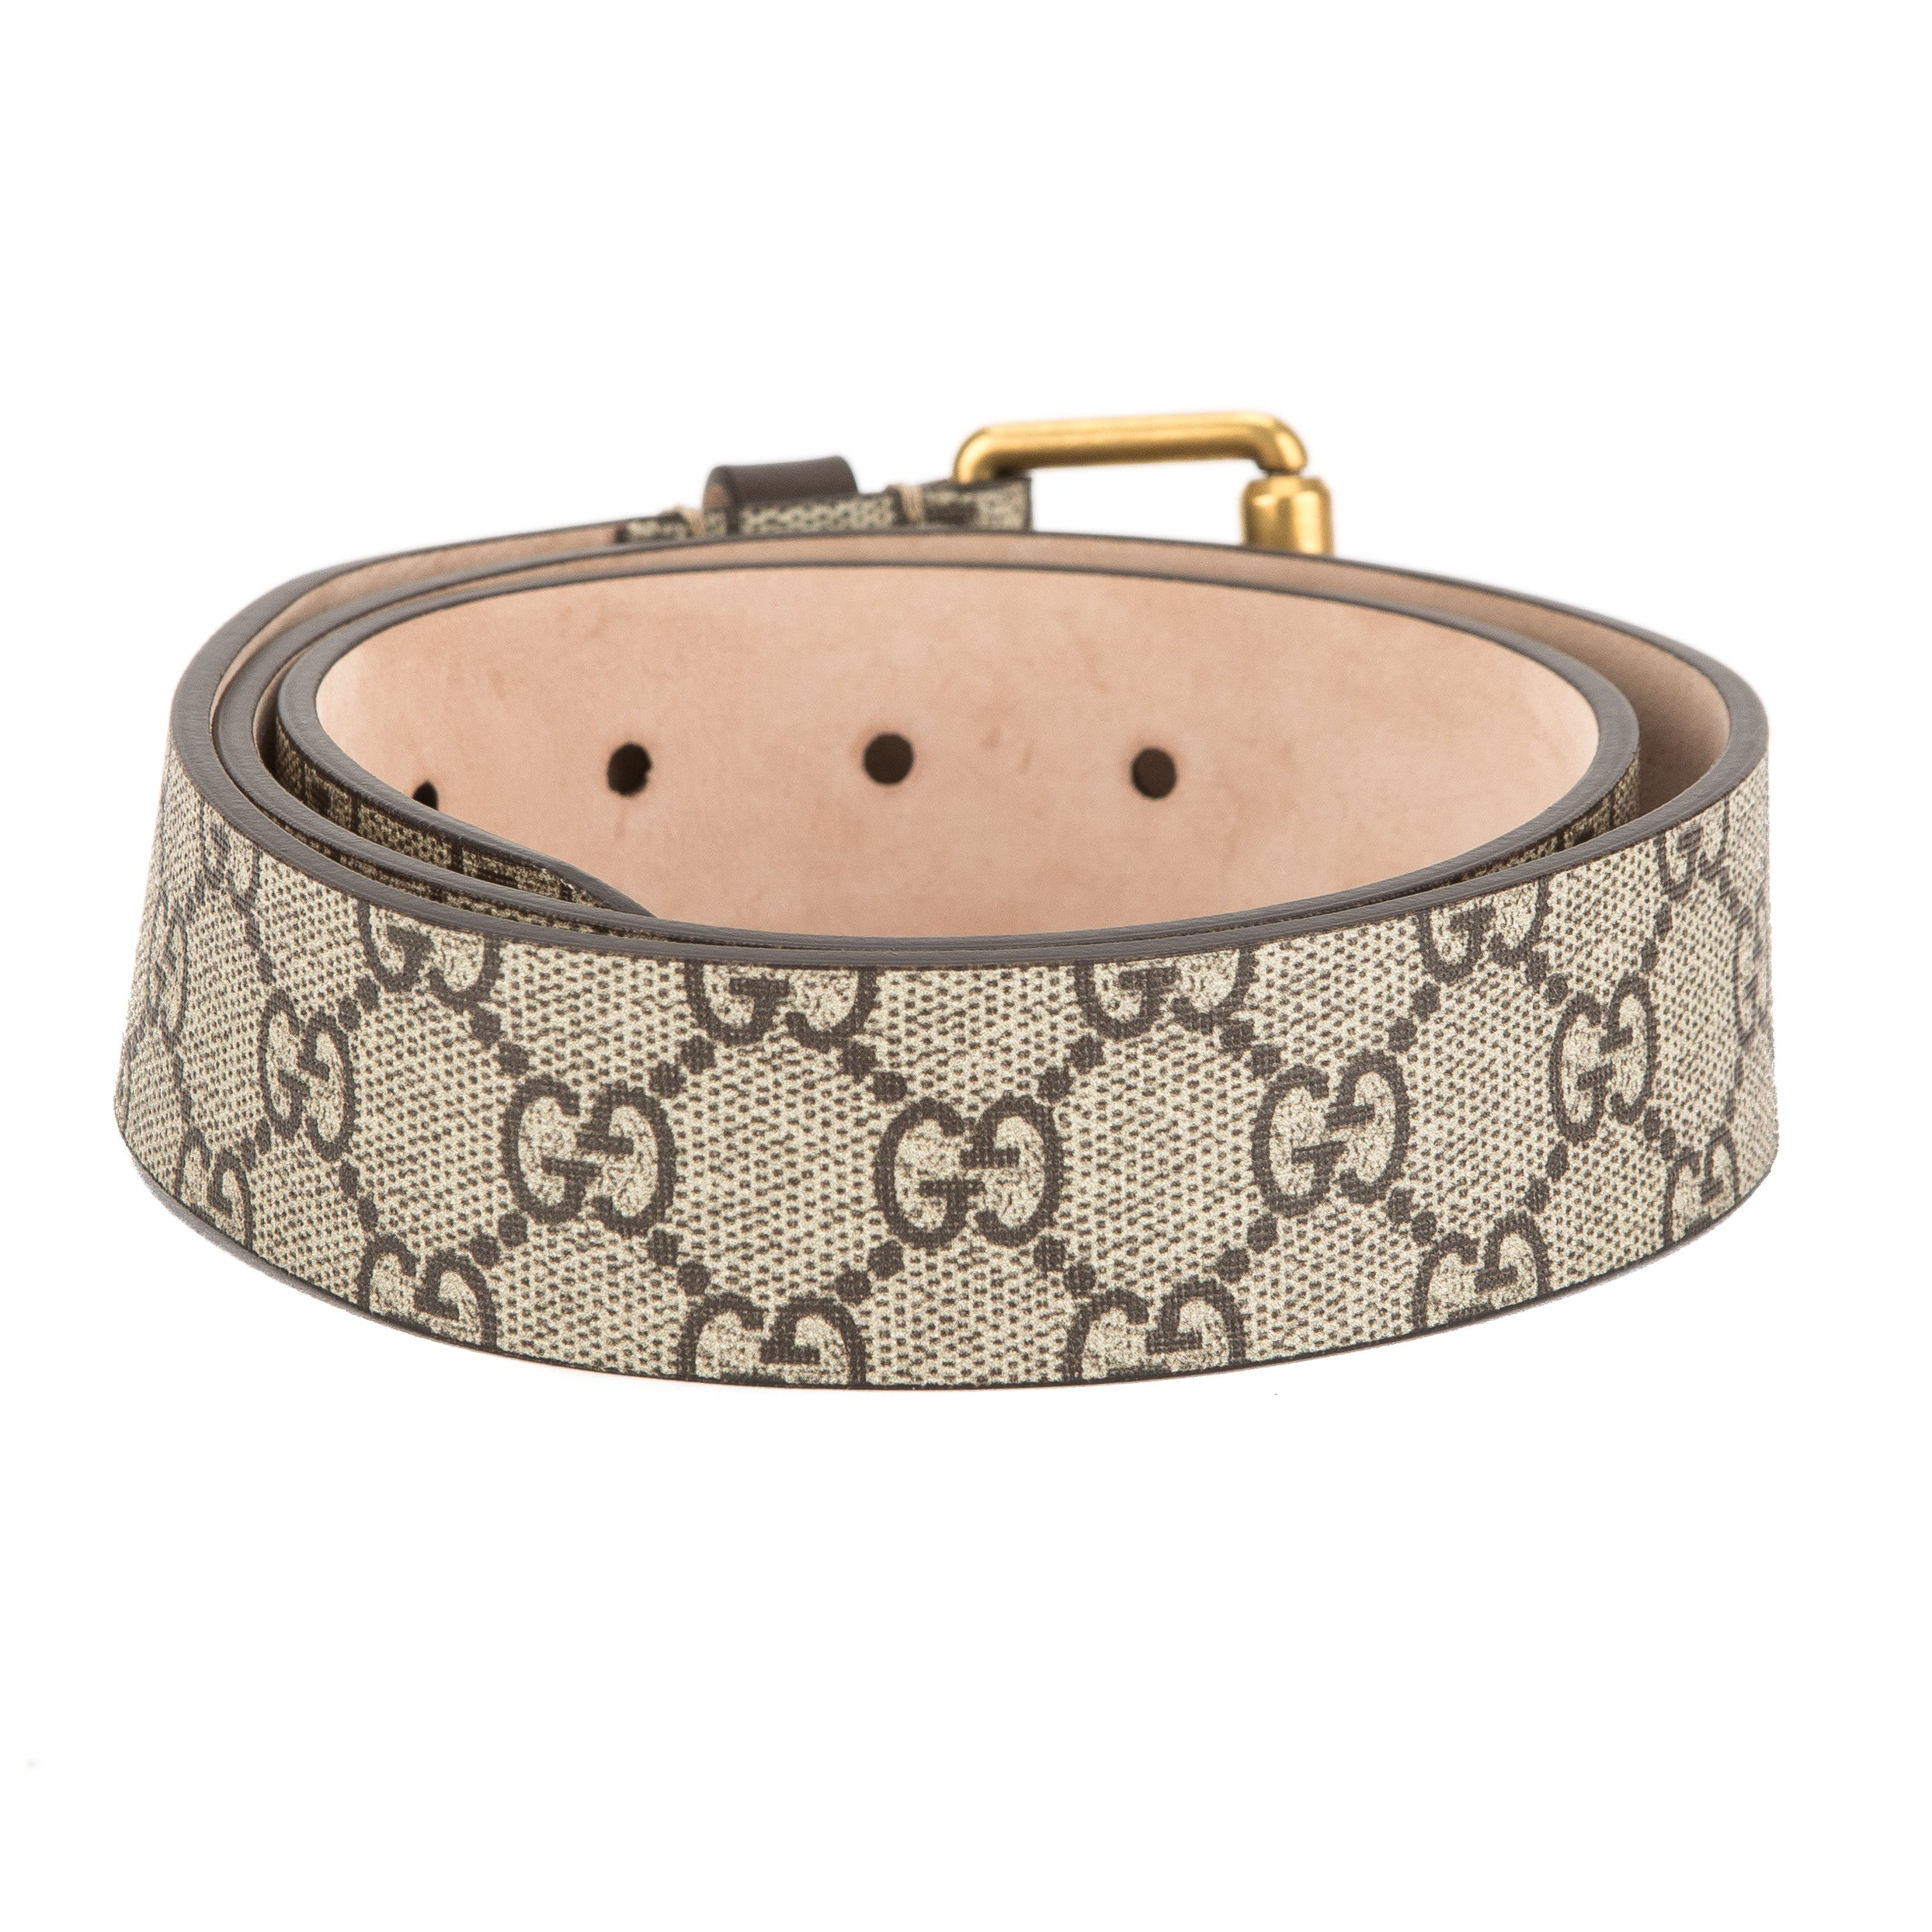 85435b18a1f Gucci GG Supreme Canvas Snake Print Belt (New with Tags) - 3571002 ...